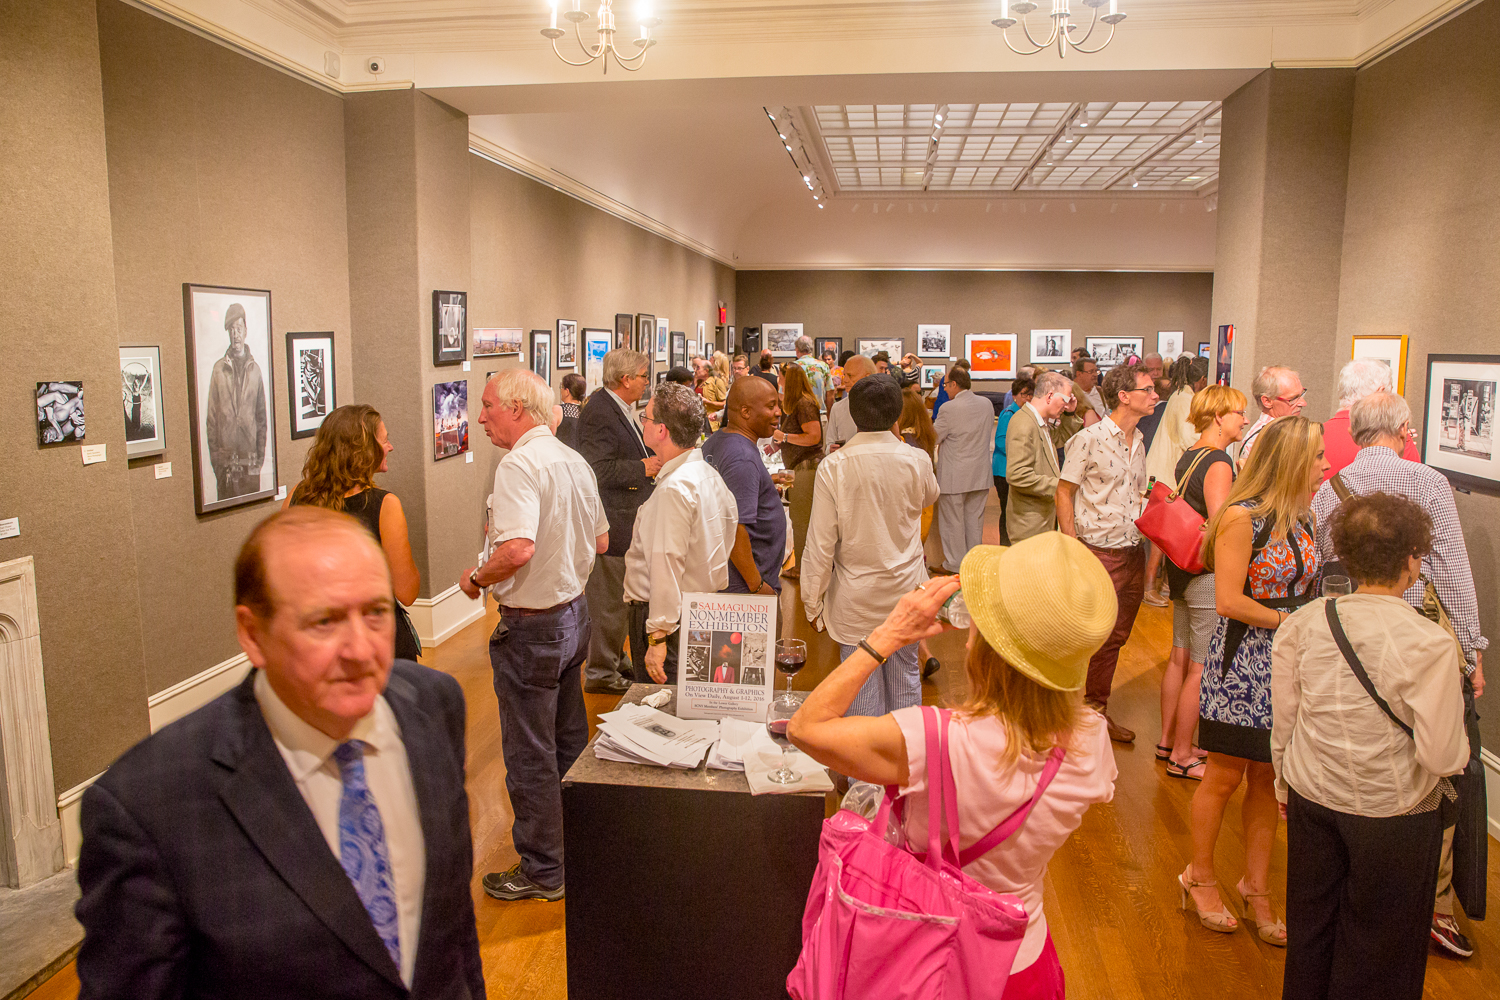 The Salmagundi Club Non-Members' Photography & Graphics Exhibition